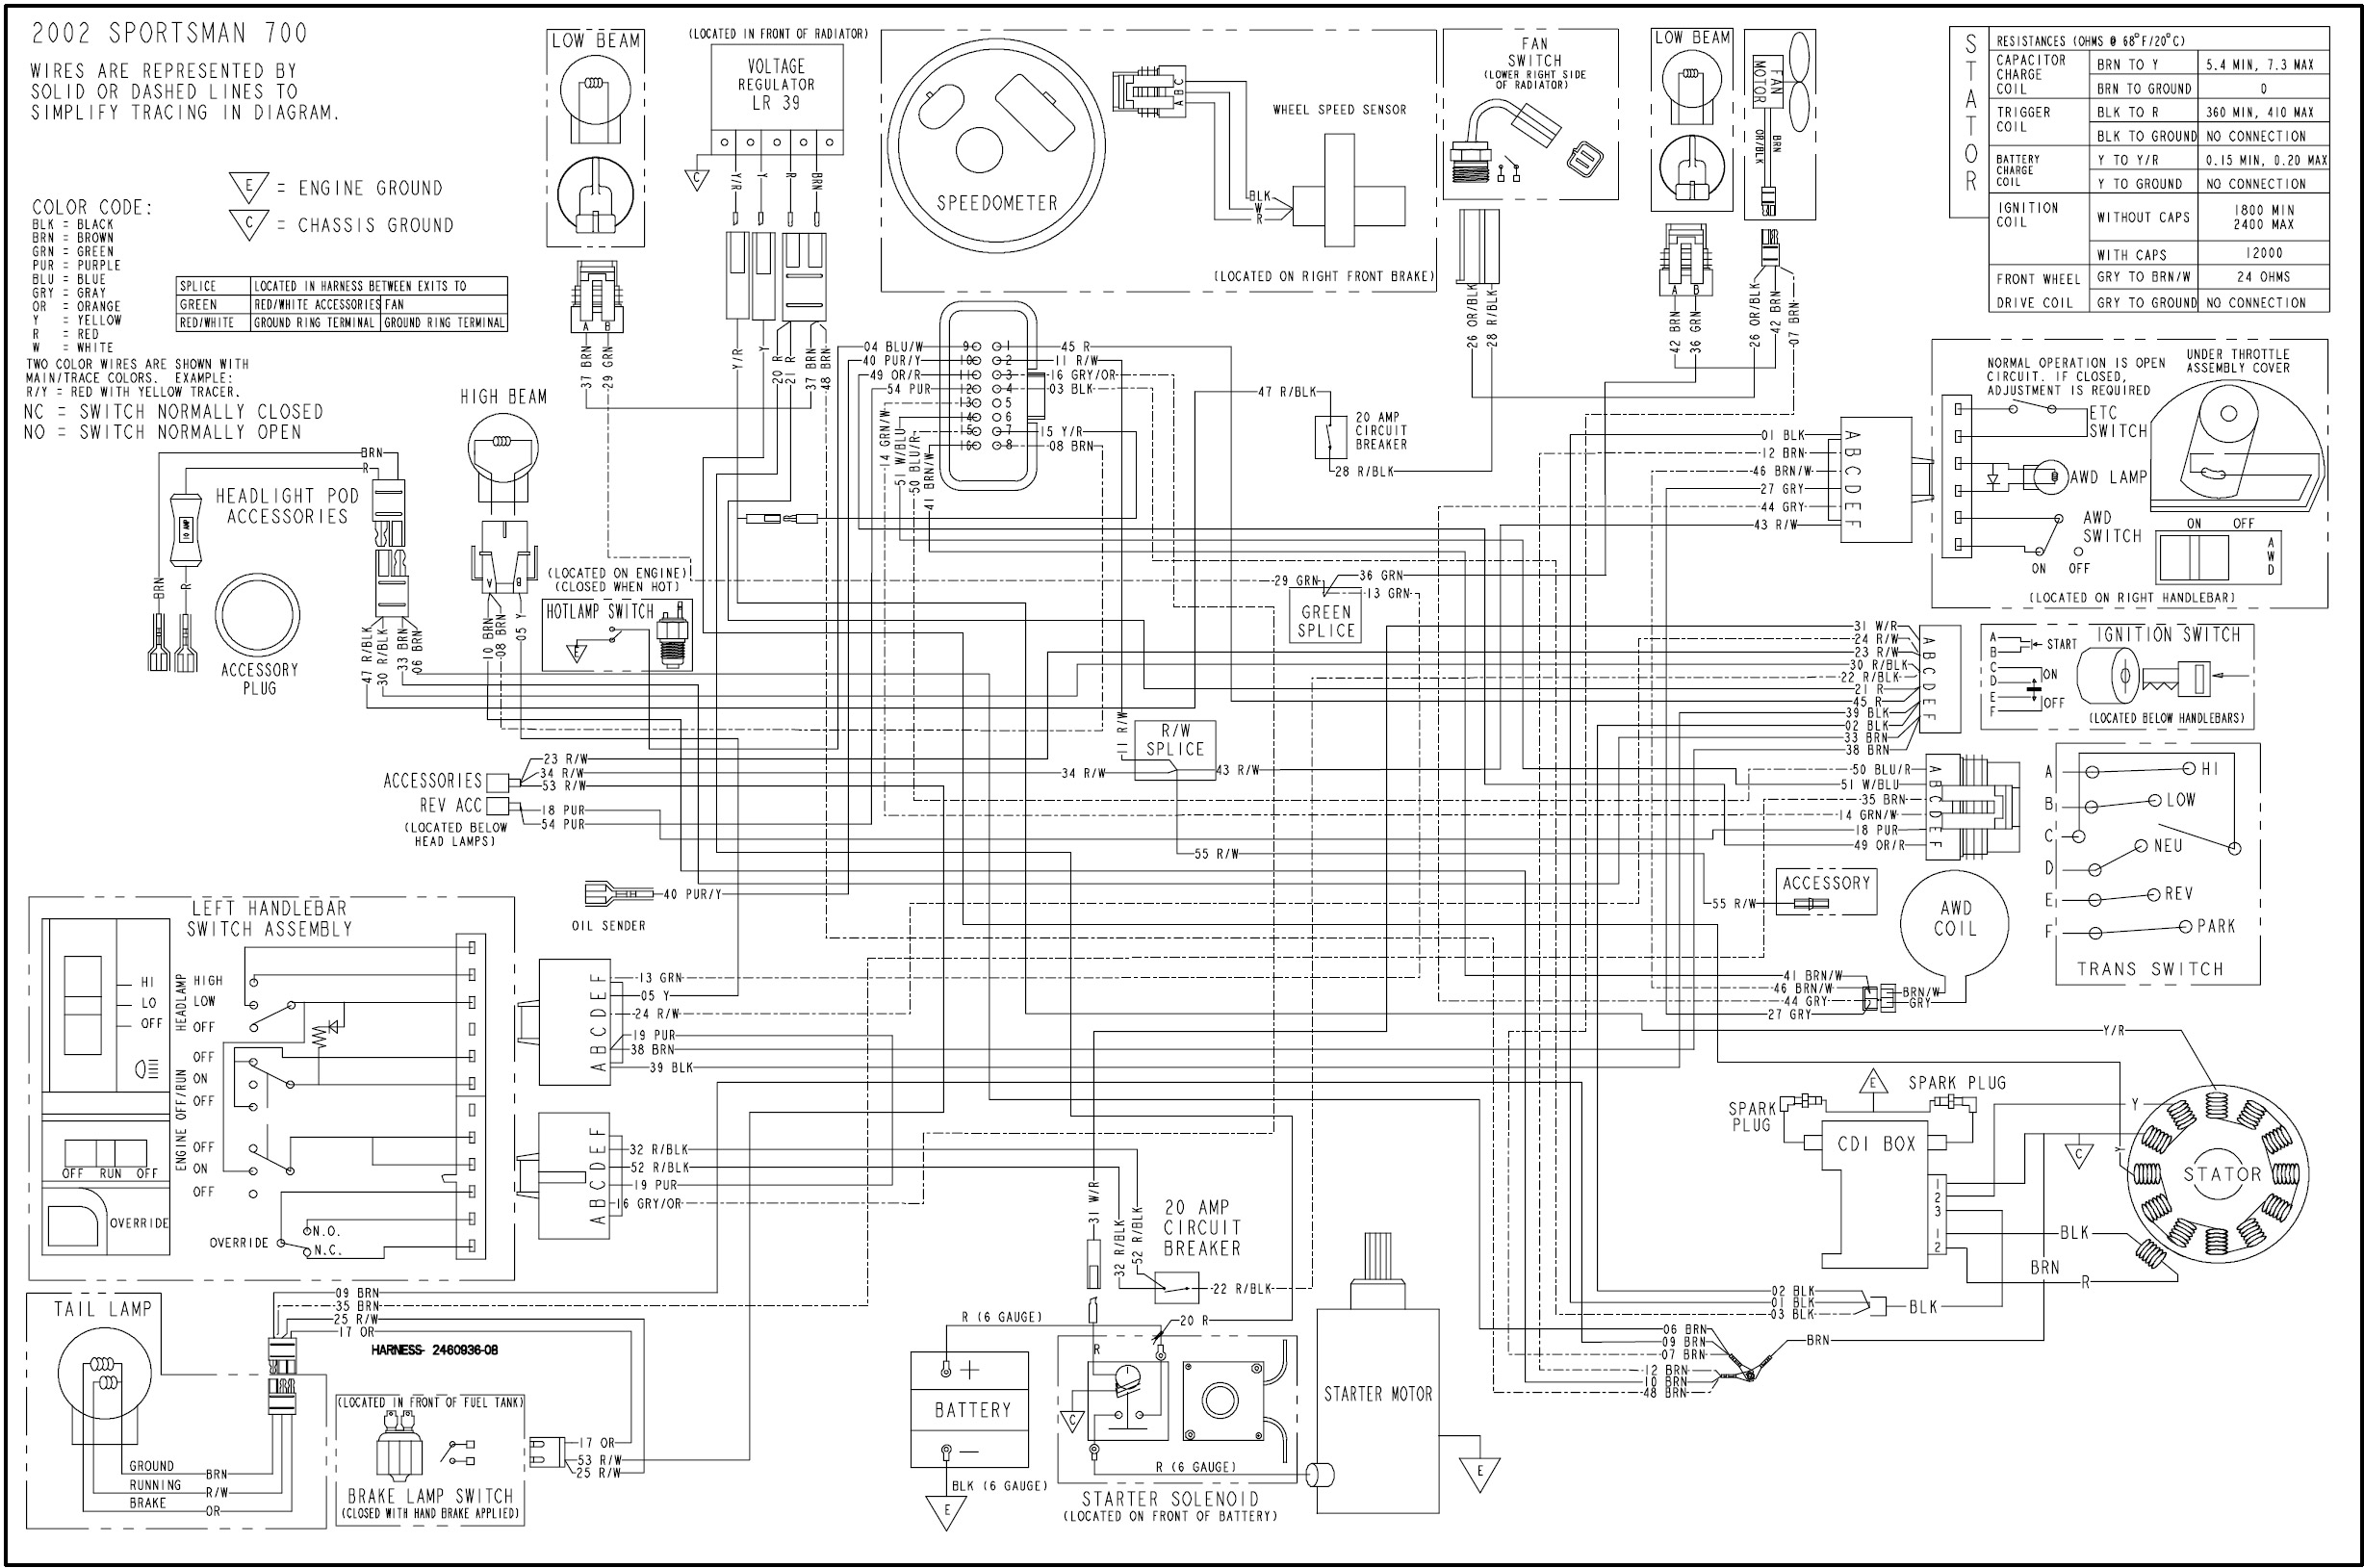 wd_700_02 wiring diagram polaris xplorer 300 readingrat net 2006 polaris hawkeye 300 wiring diagram at bayanpartner.co